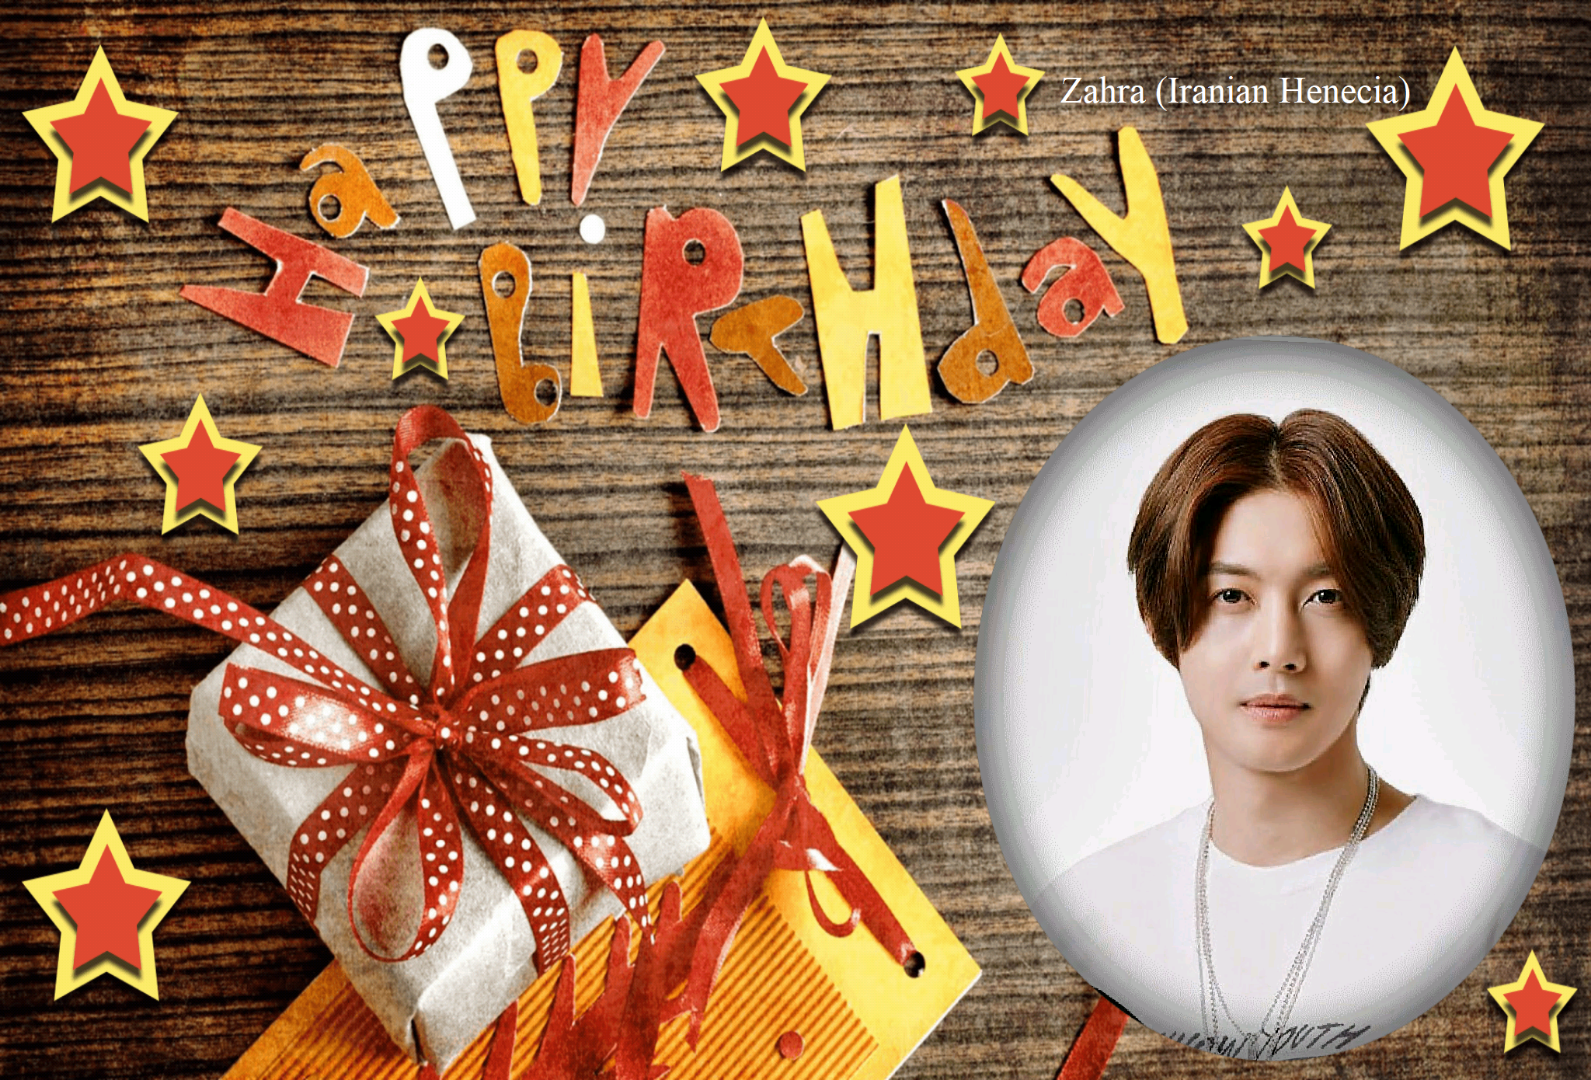 (My Fanart from Happy 32th Birtday of KHJ (4